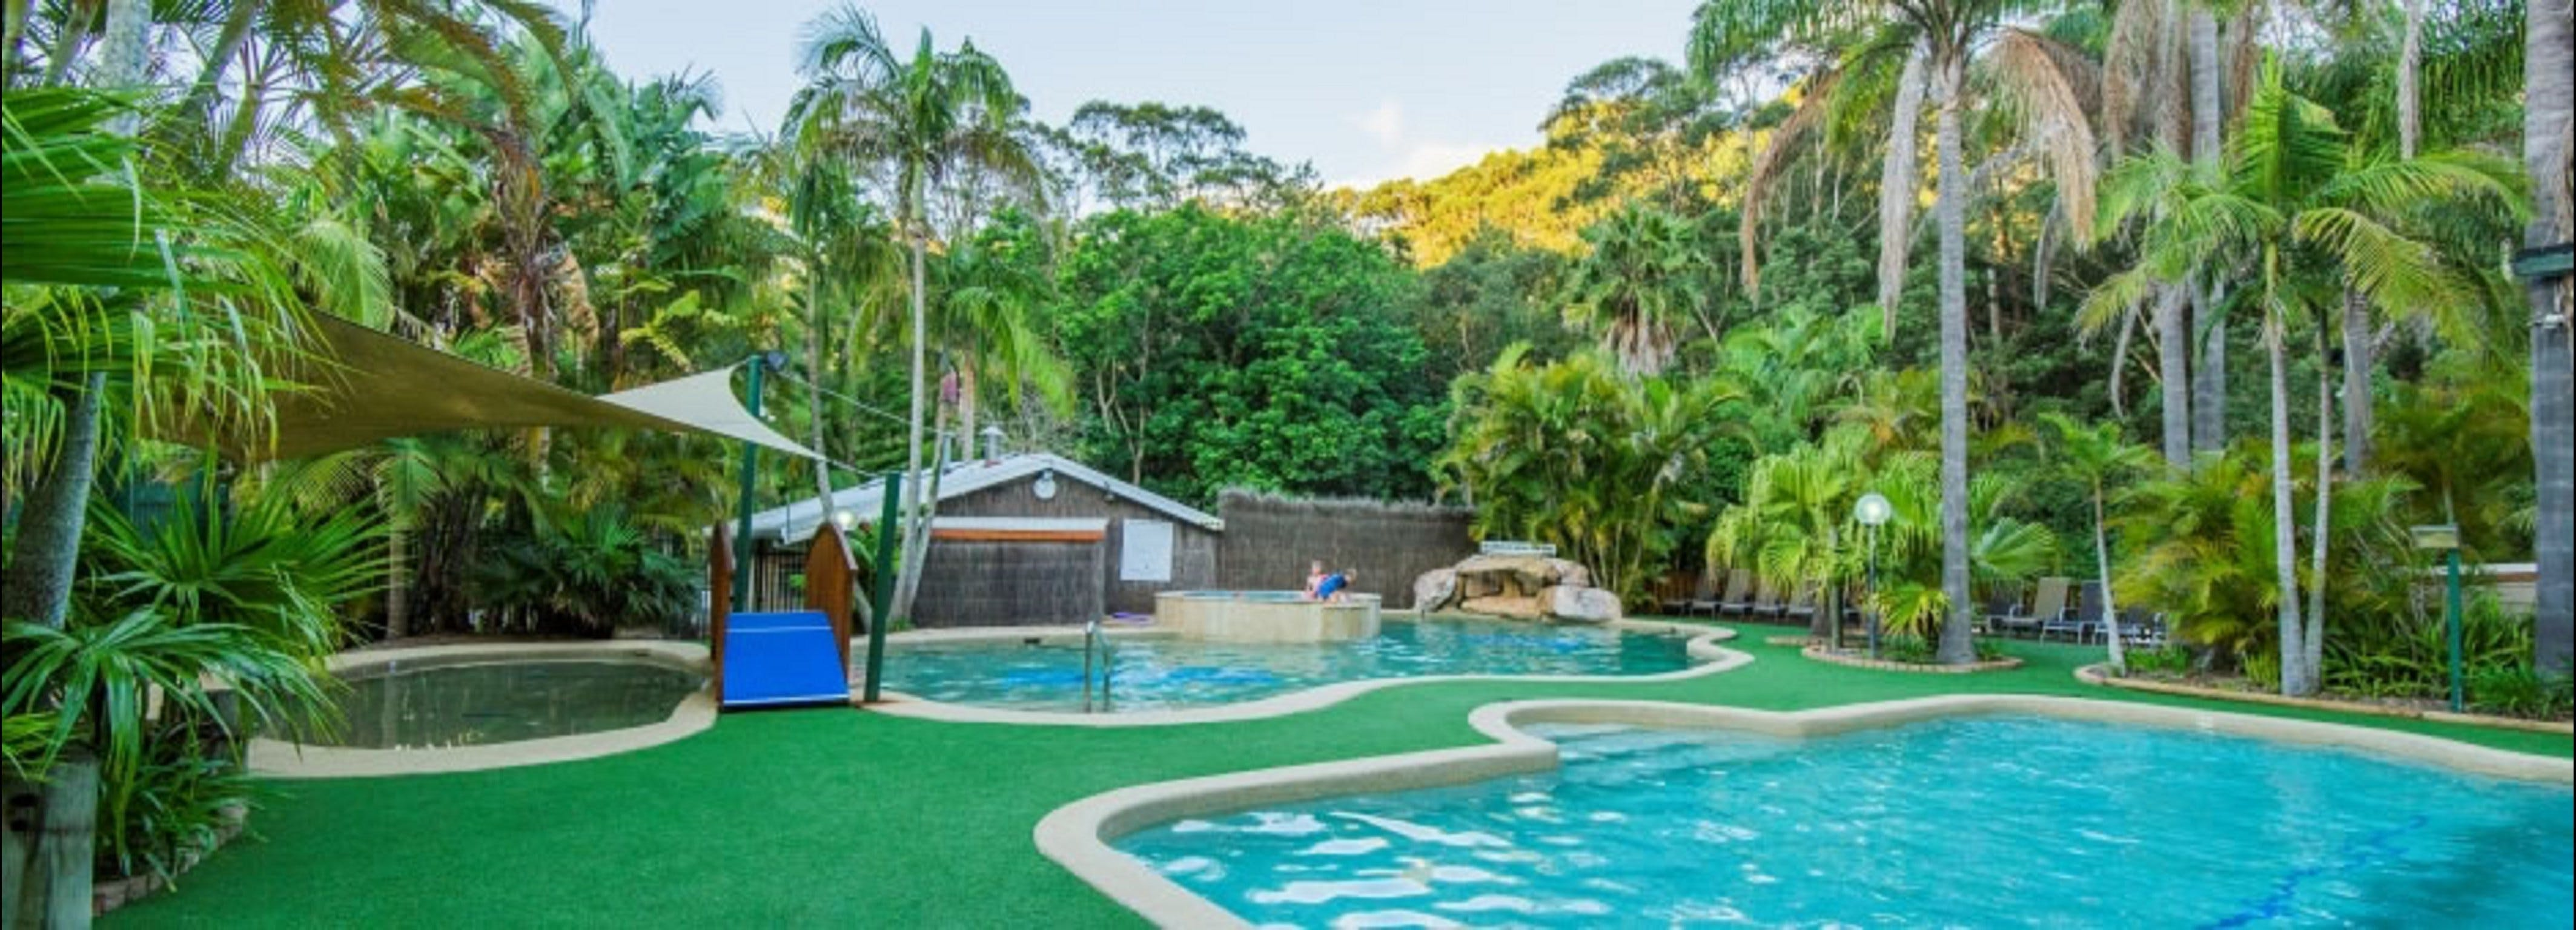 The Palms at Avoca - Accommodation Daintree